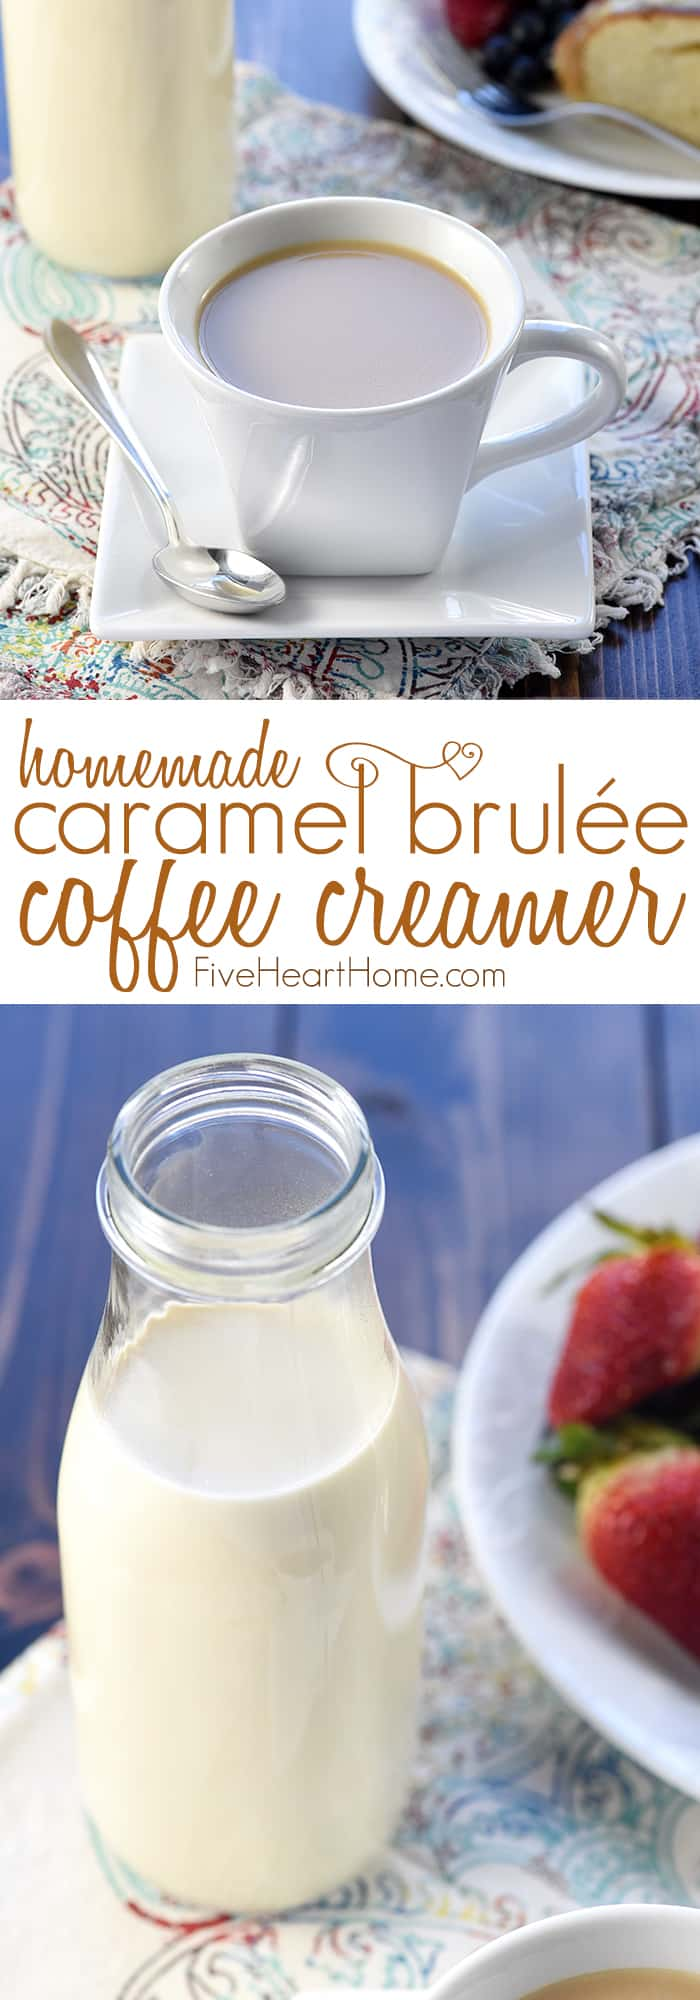 Caramel Brulée Coffee Creamer Collage with Text Overlay